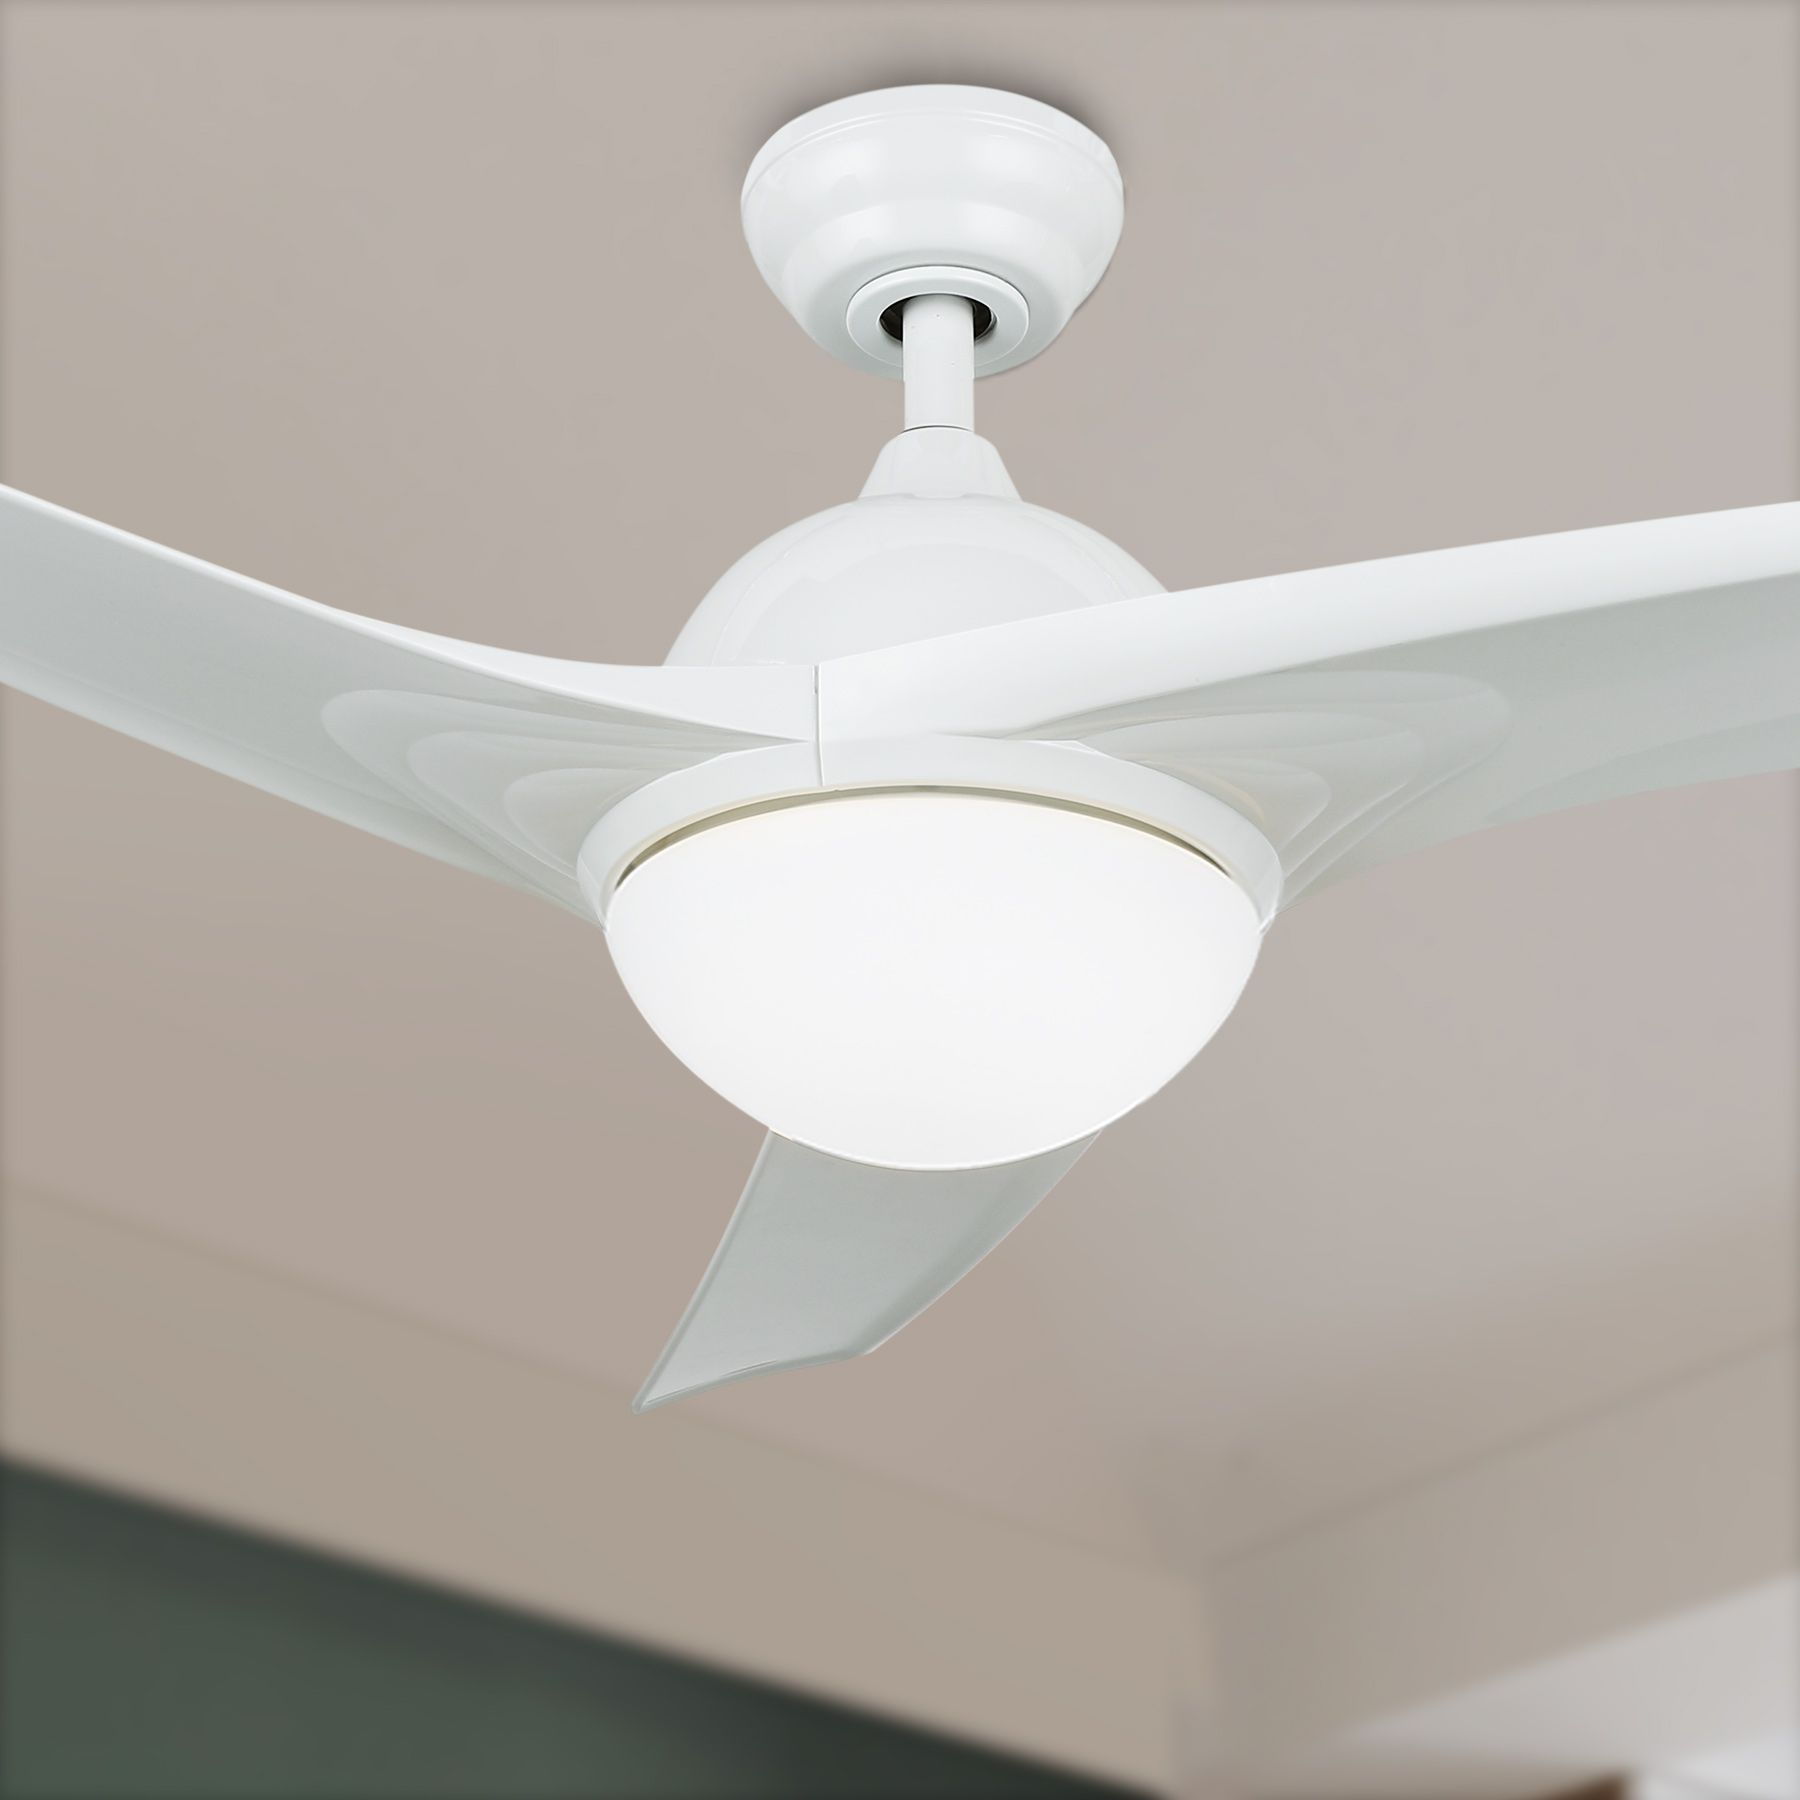 52 Contemporary Ceiling Fan With Led Panel Light Remote White Finish W 3 Blades Walmart Com In 2021 Led Panel Light Contemporary Ceiling Fans Ceiling Fan